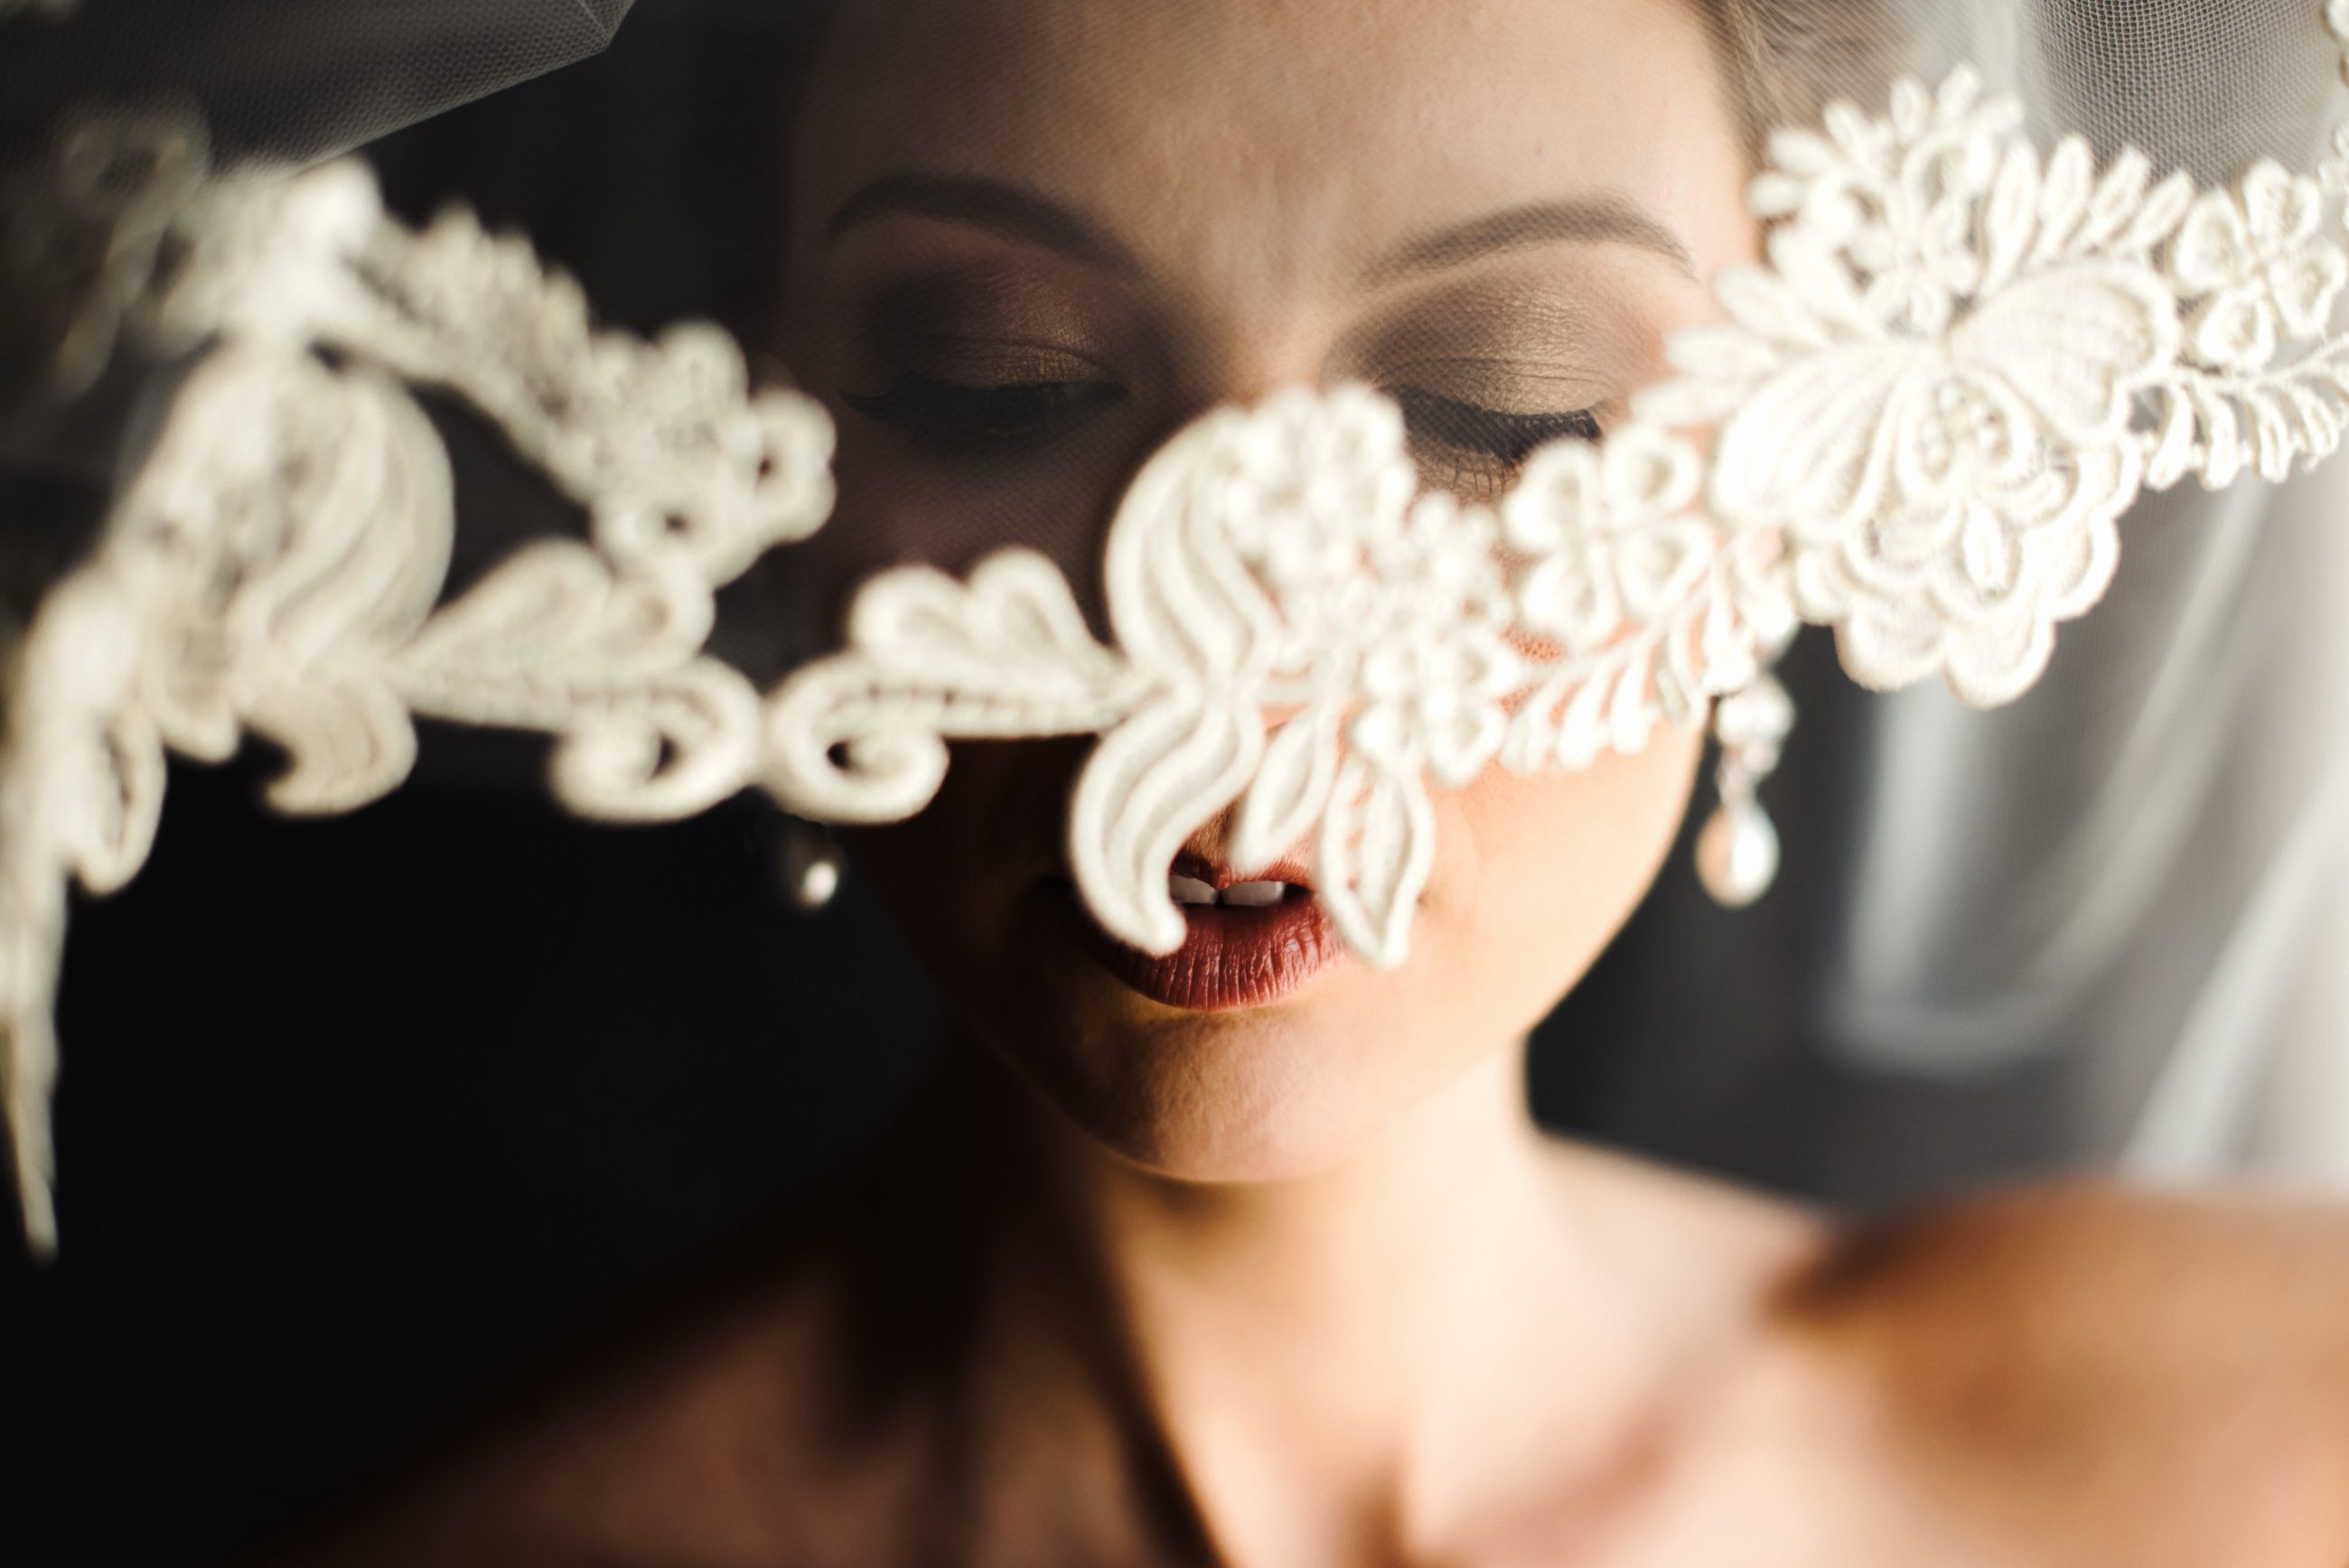 Lace detail on veil detail shot captured by Anchor and Veil Photography